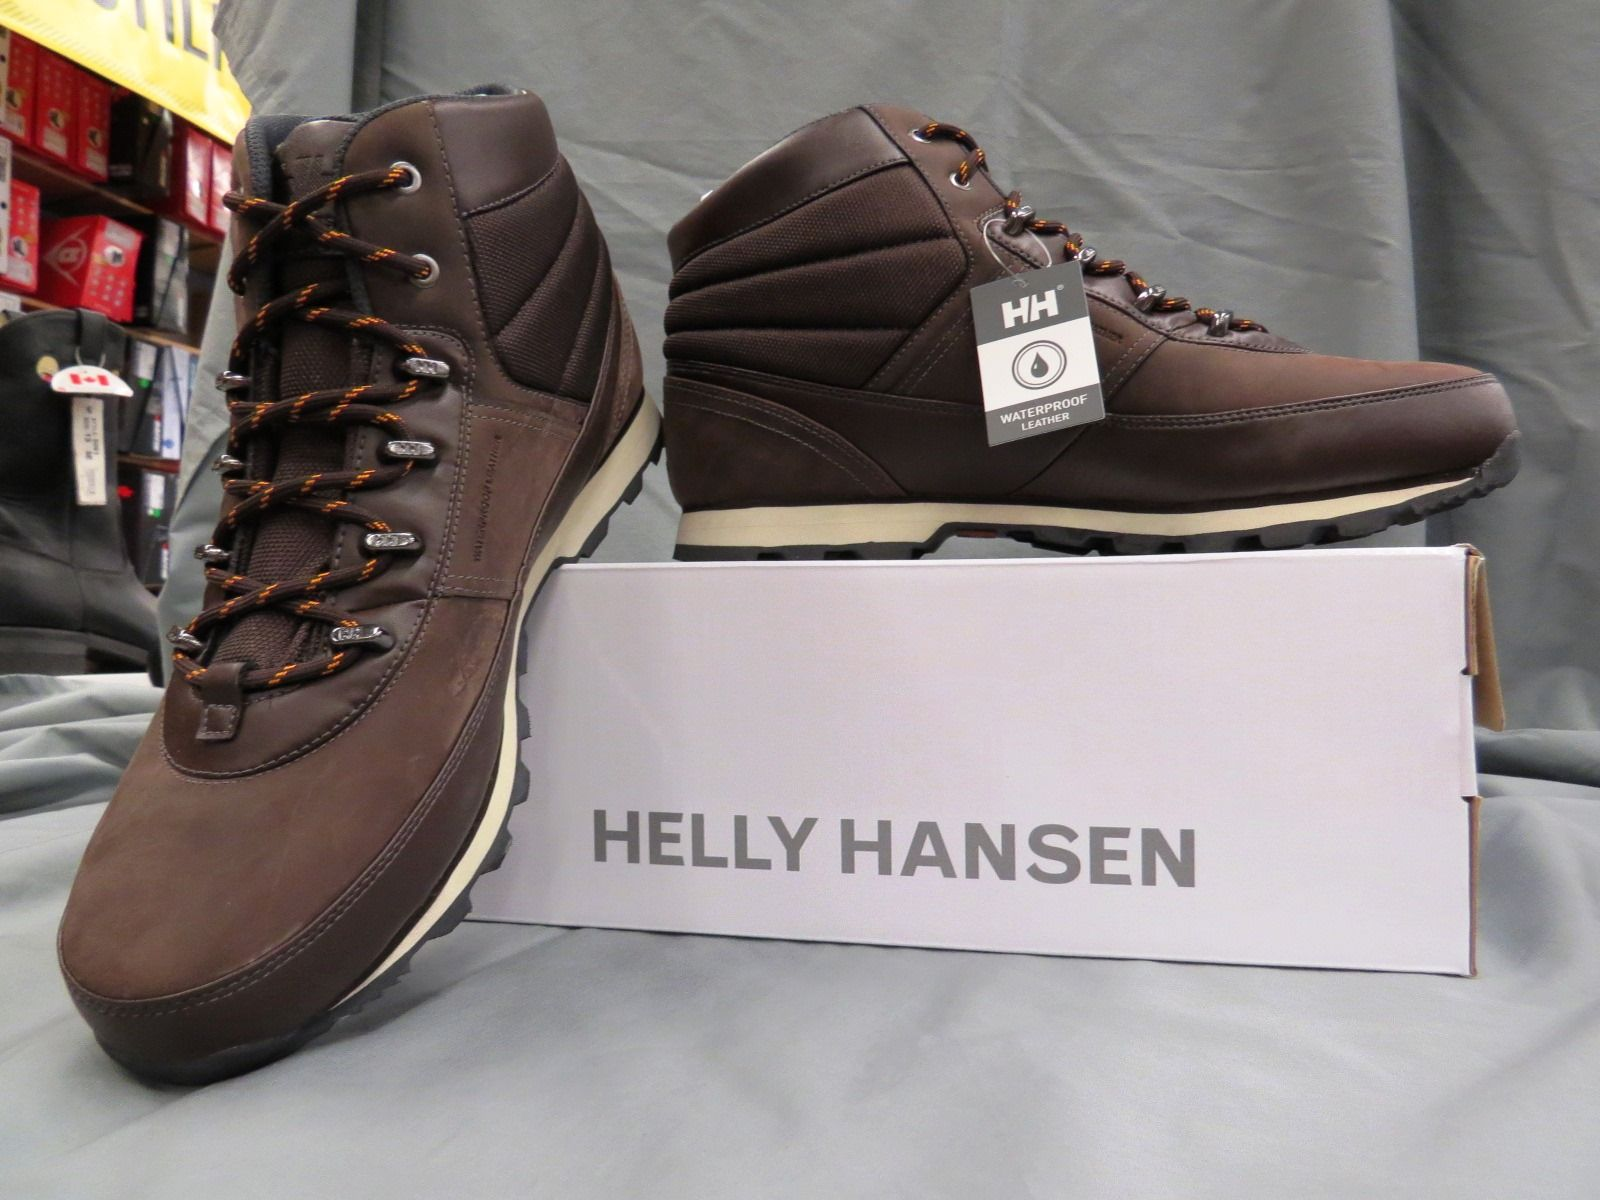 Skate shoes ankle support - Ankle Support And Water Resistant Plus Comfort And Made To Last From Hellyhansen